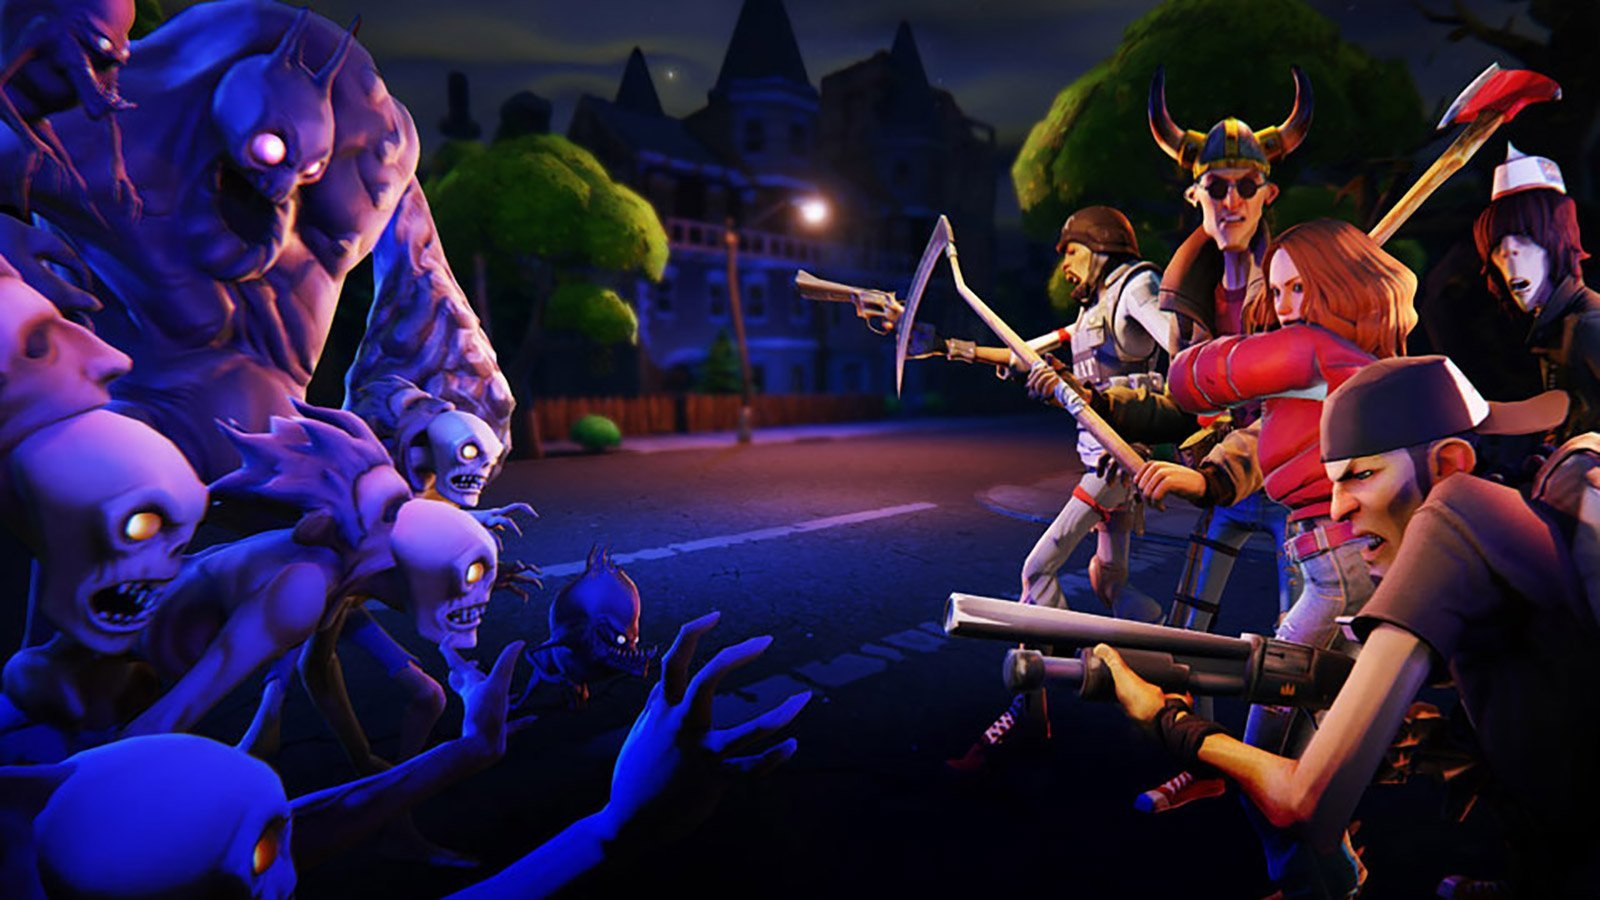 This Fortnite scam could hold your computer files ransom